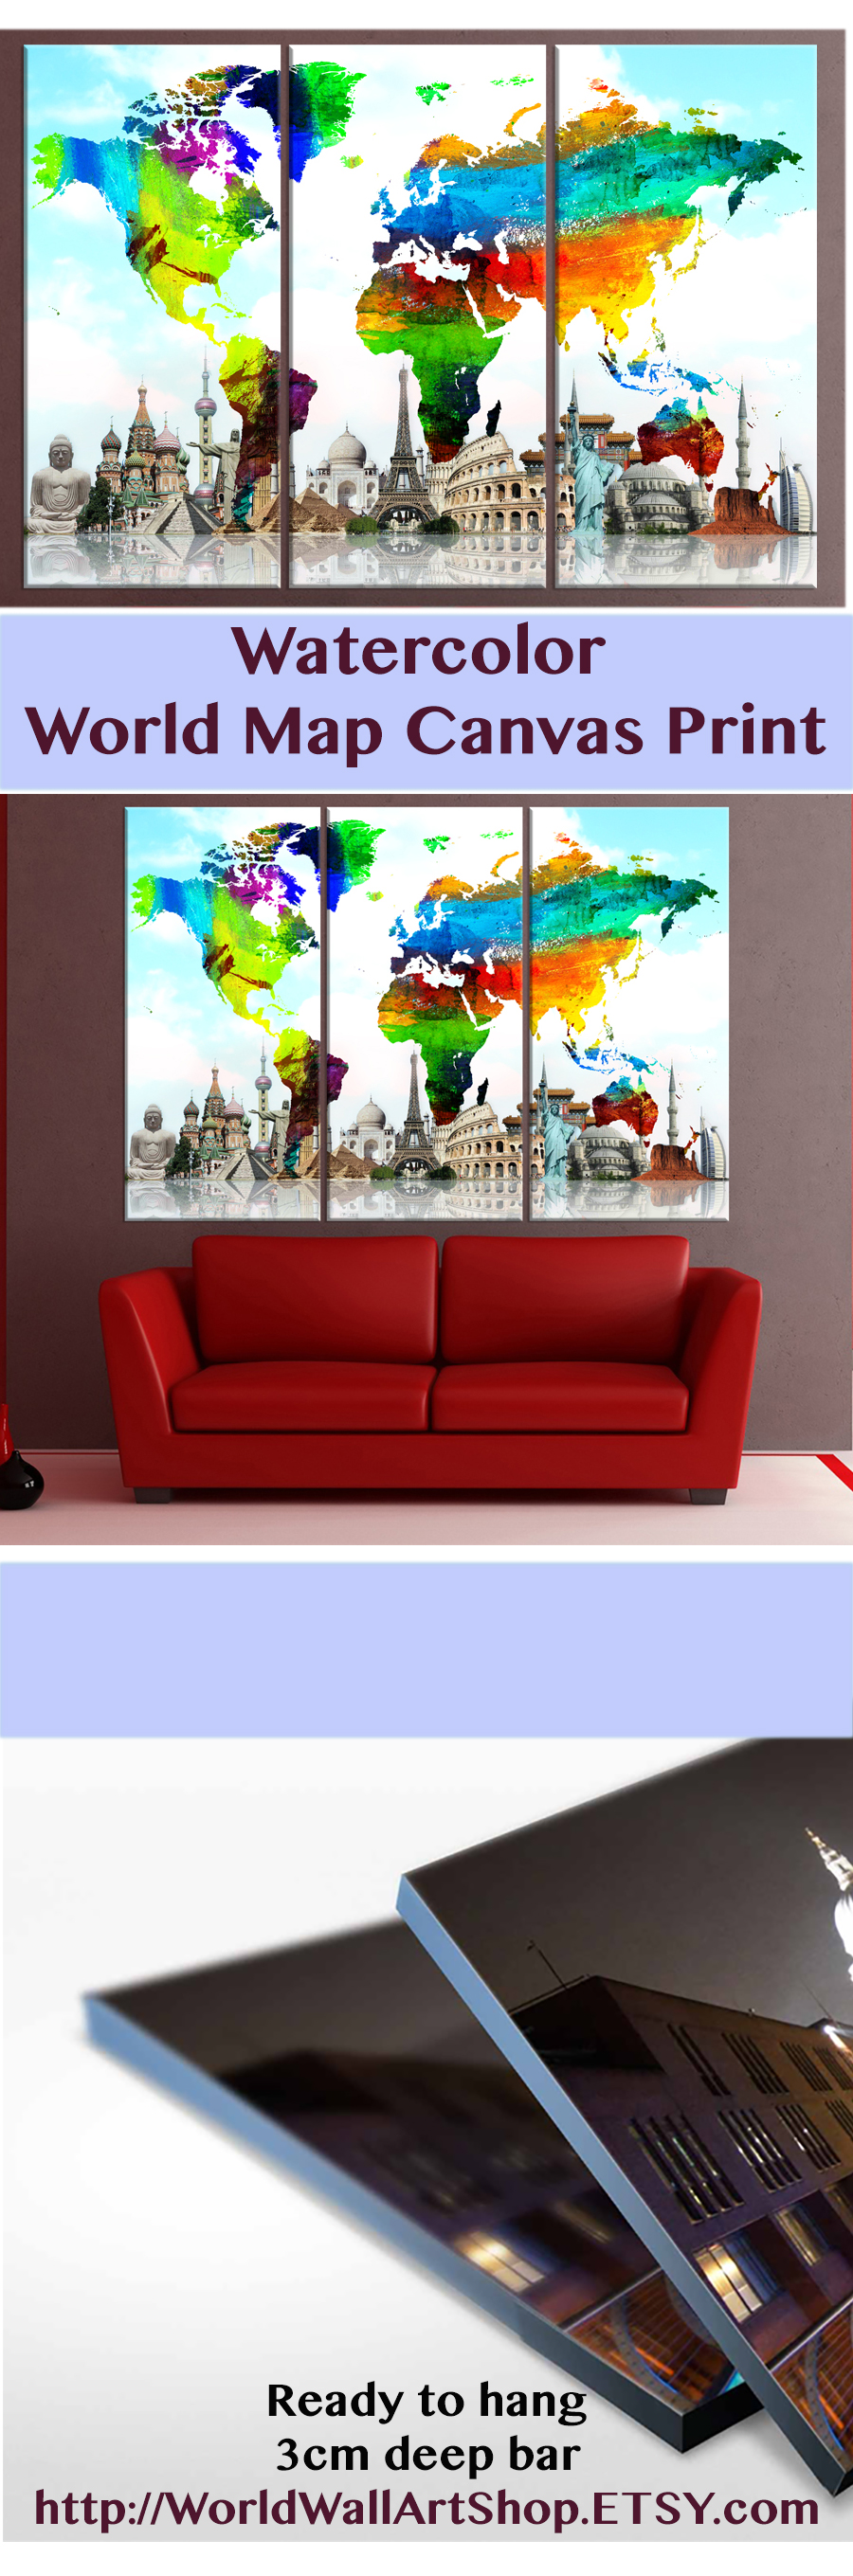 World map wall art watercolor abstract print httpsetsy world map wall art watercolor abstract print httpsetsy gumiabroncs Image collections